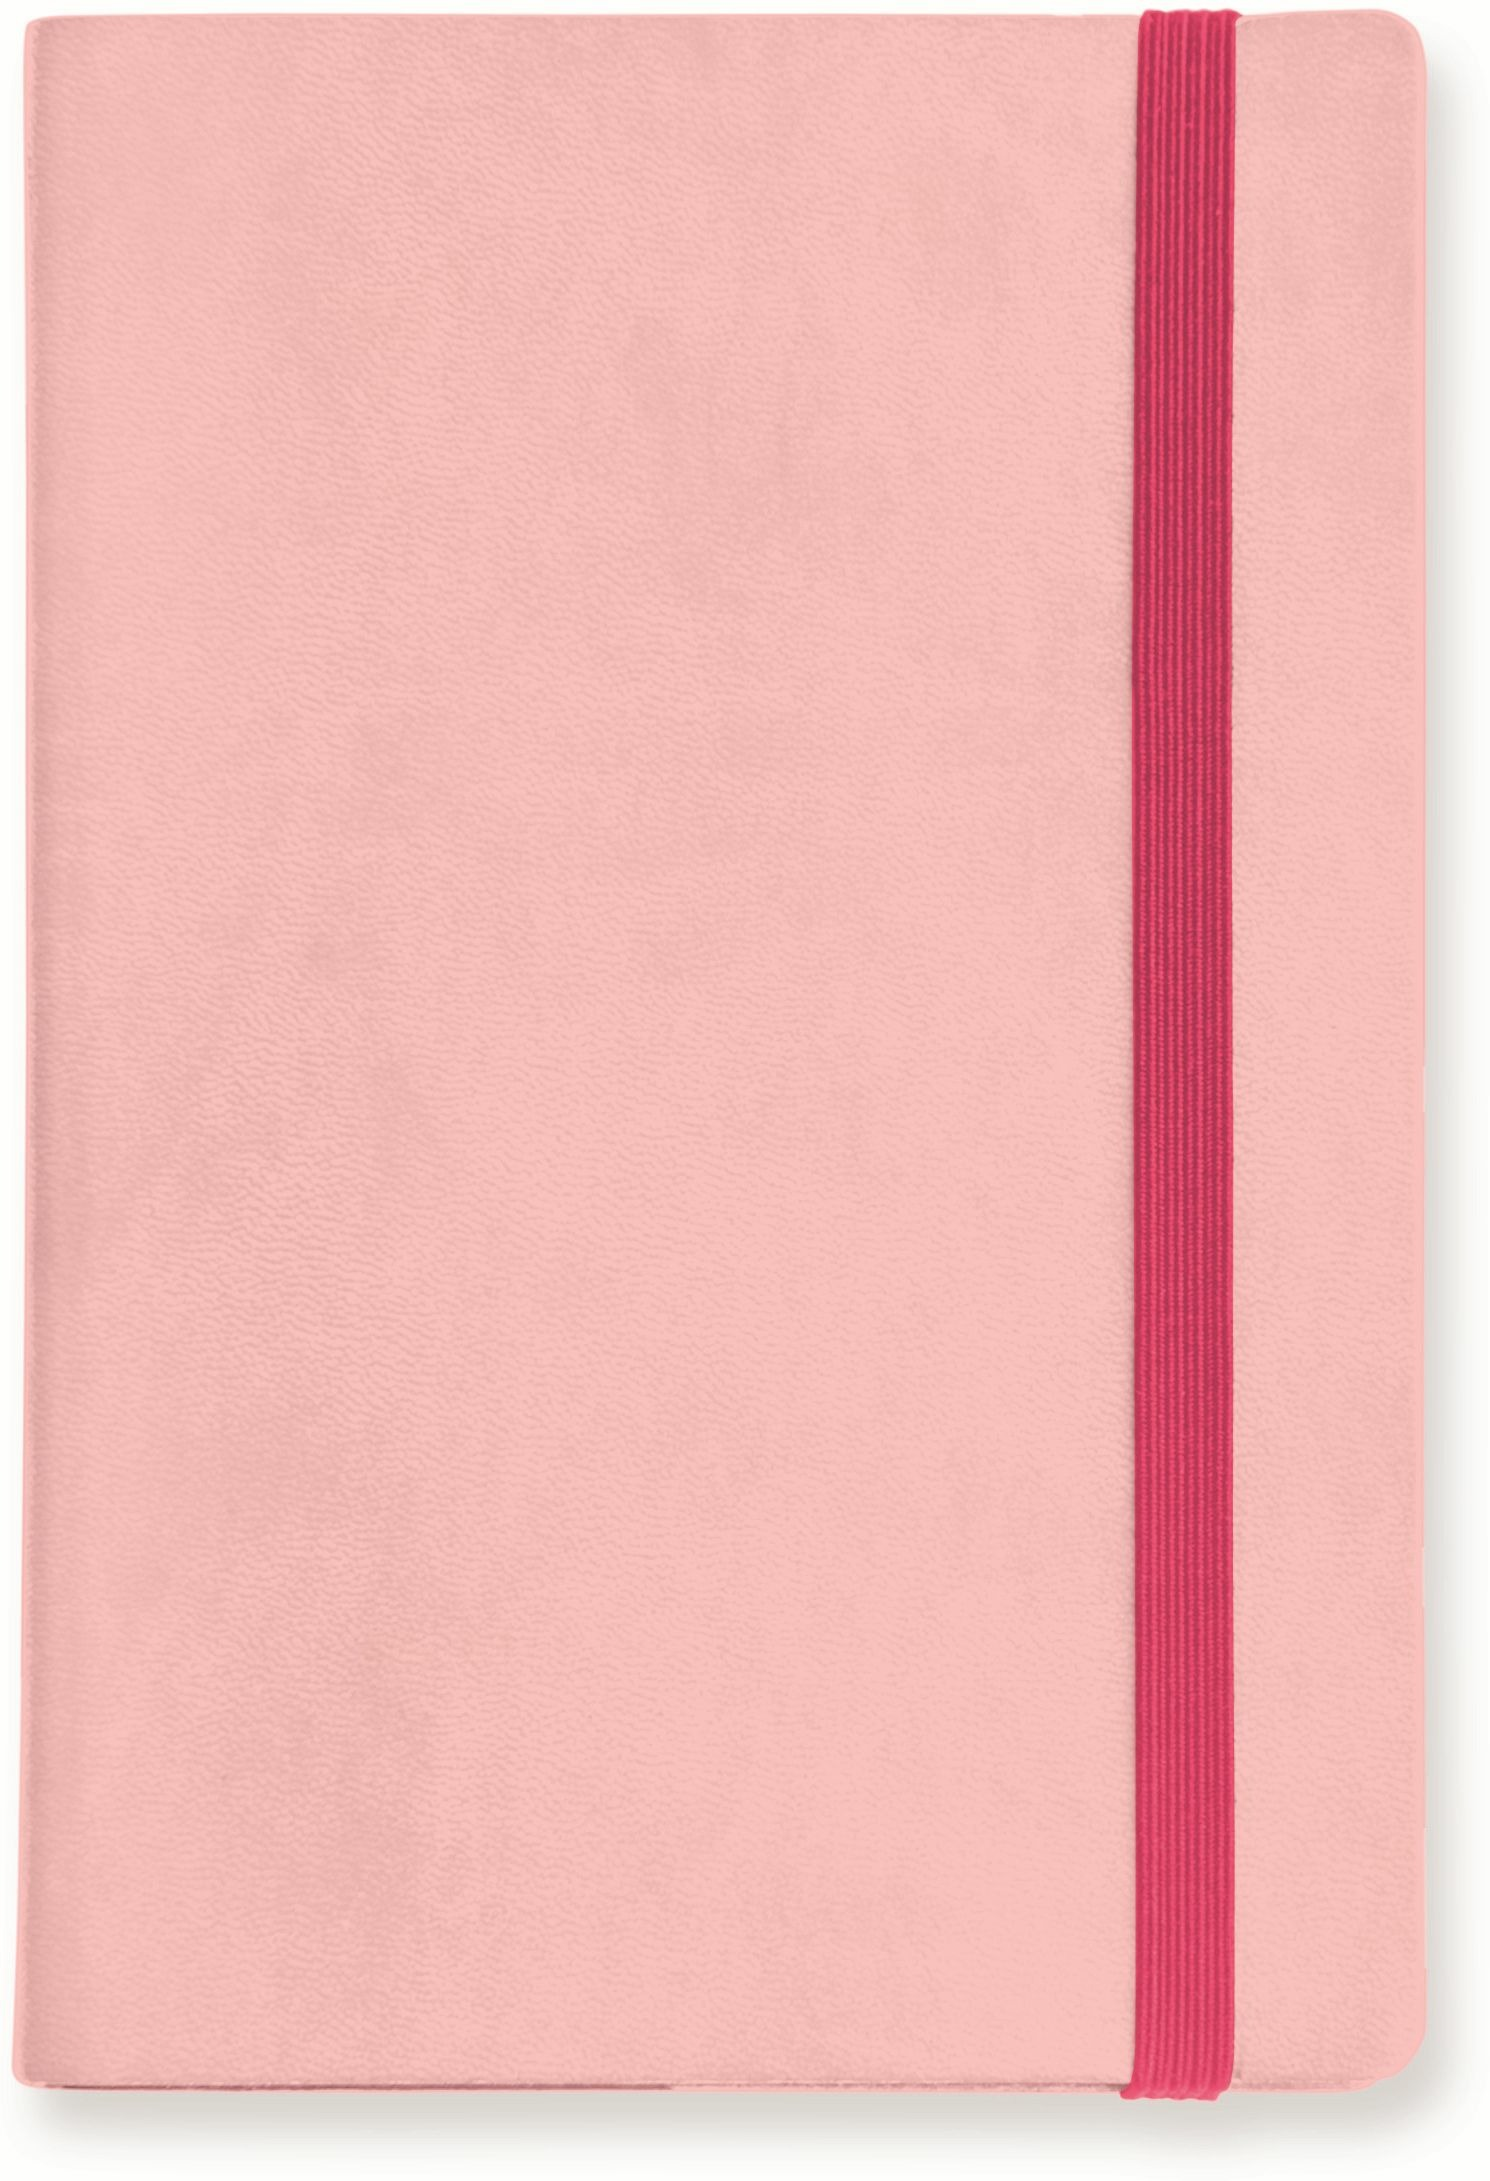 Image of My Notebook Small a pagine bianche. Rosa